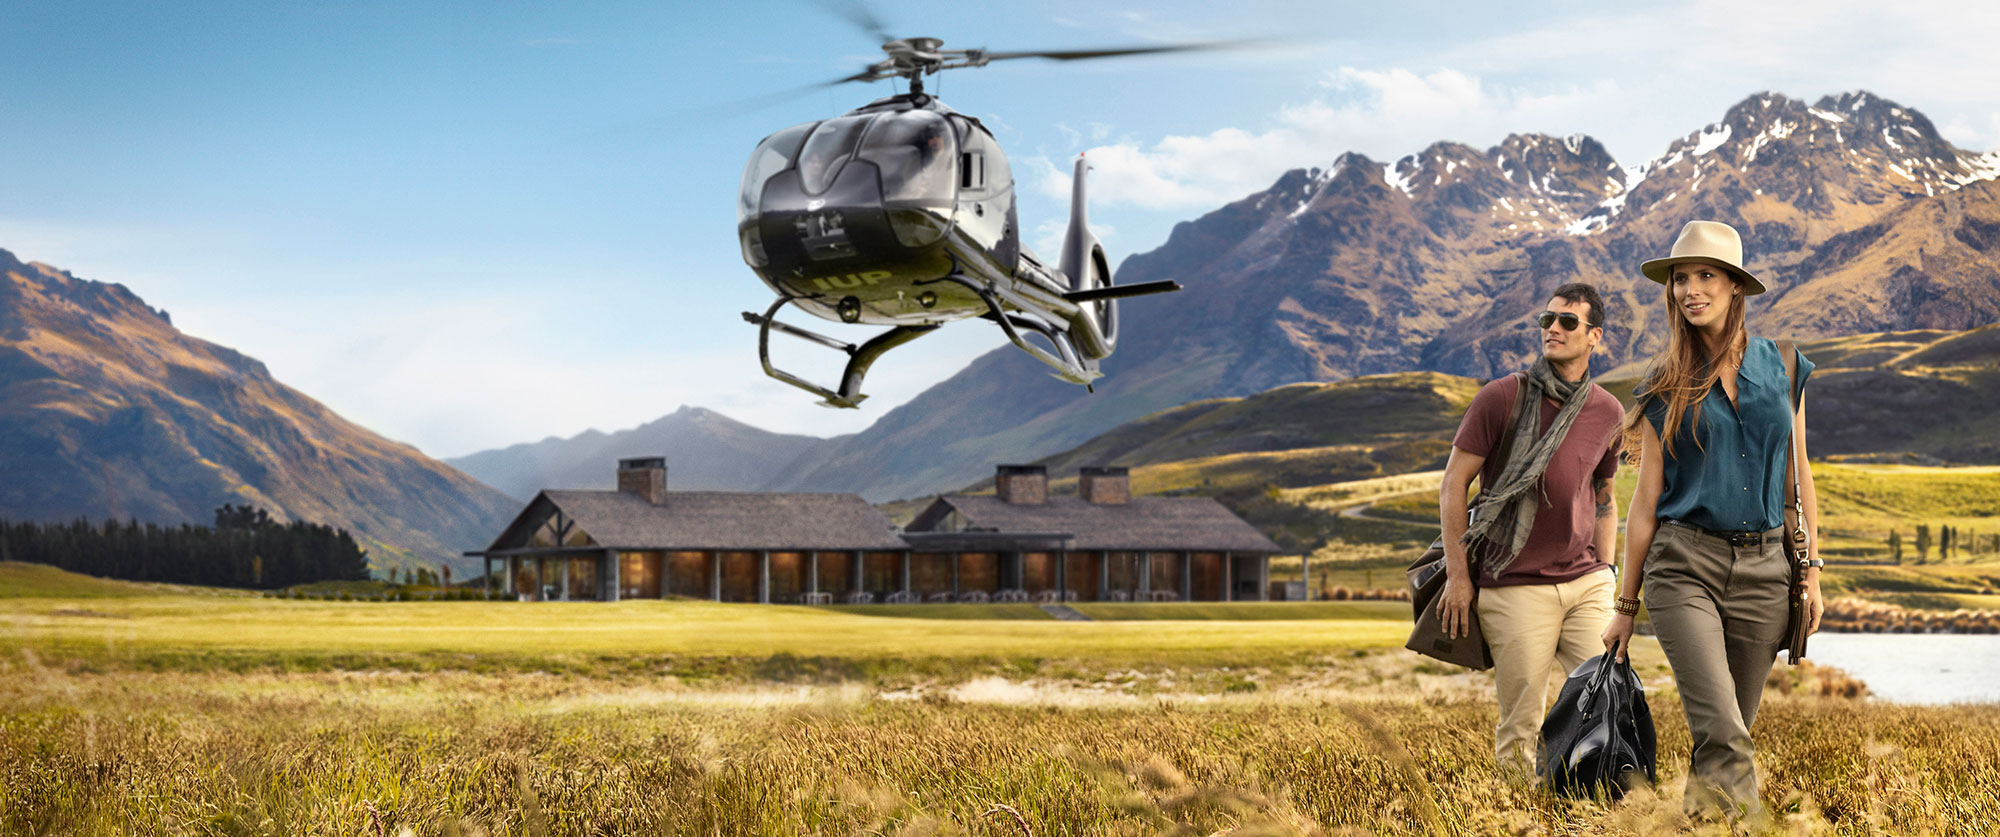 Landing via a helicopter in Jack's Point near Queenstown in New Zealand